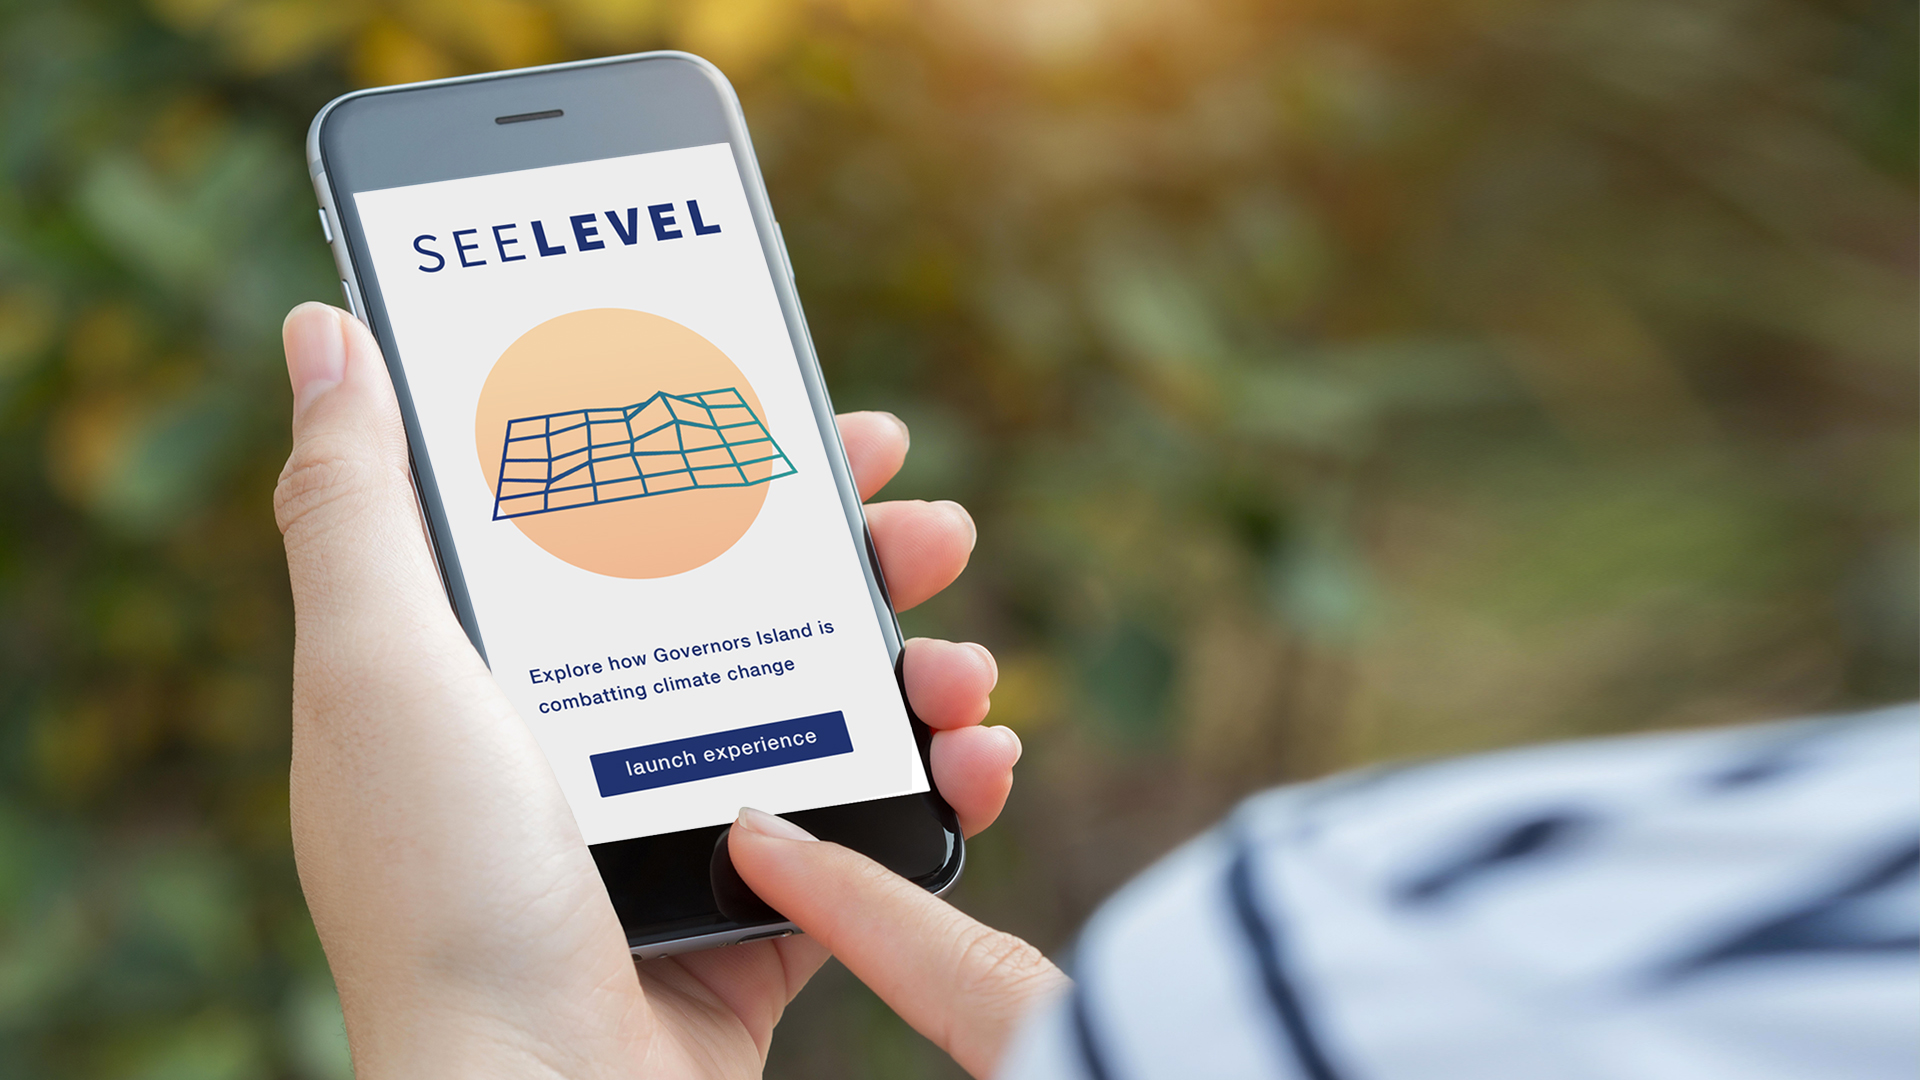 See Level - AR Experience, Climate Change